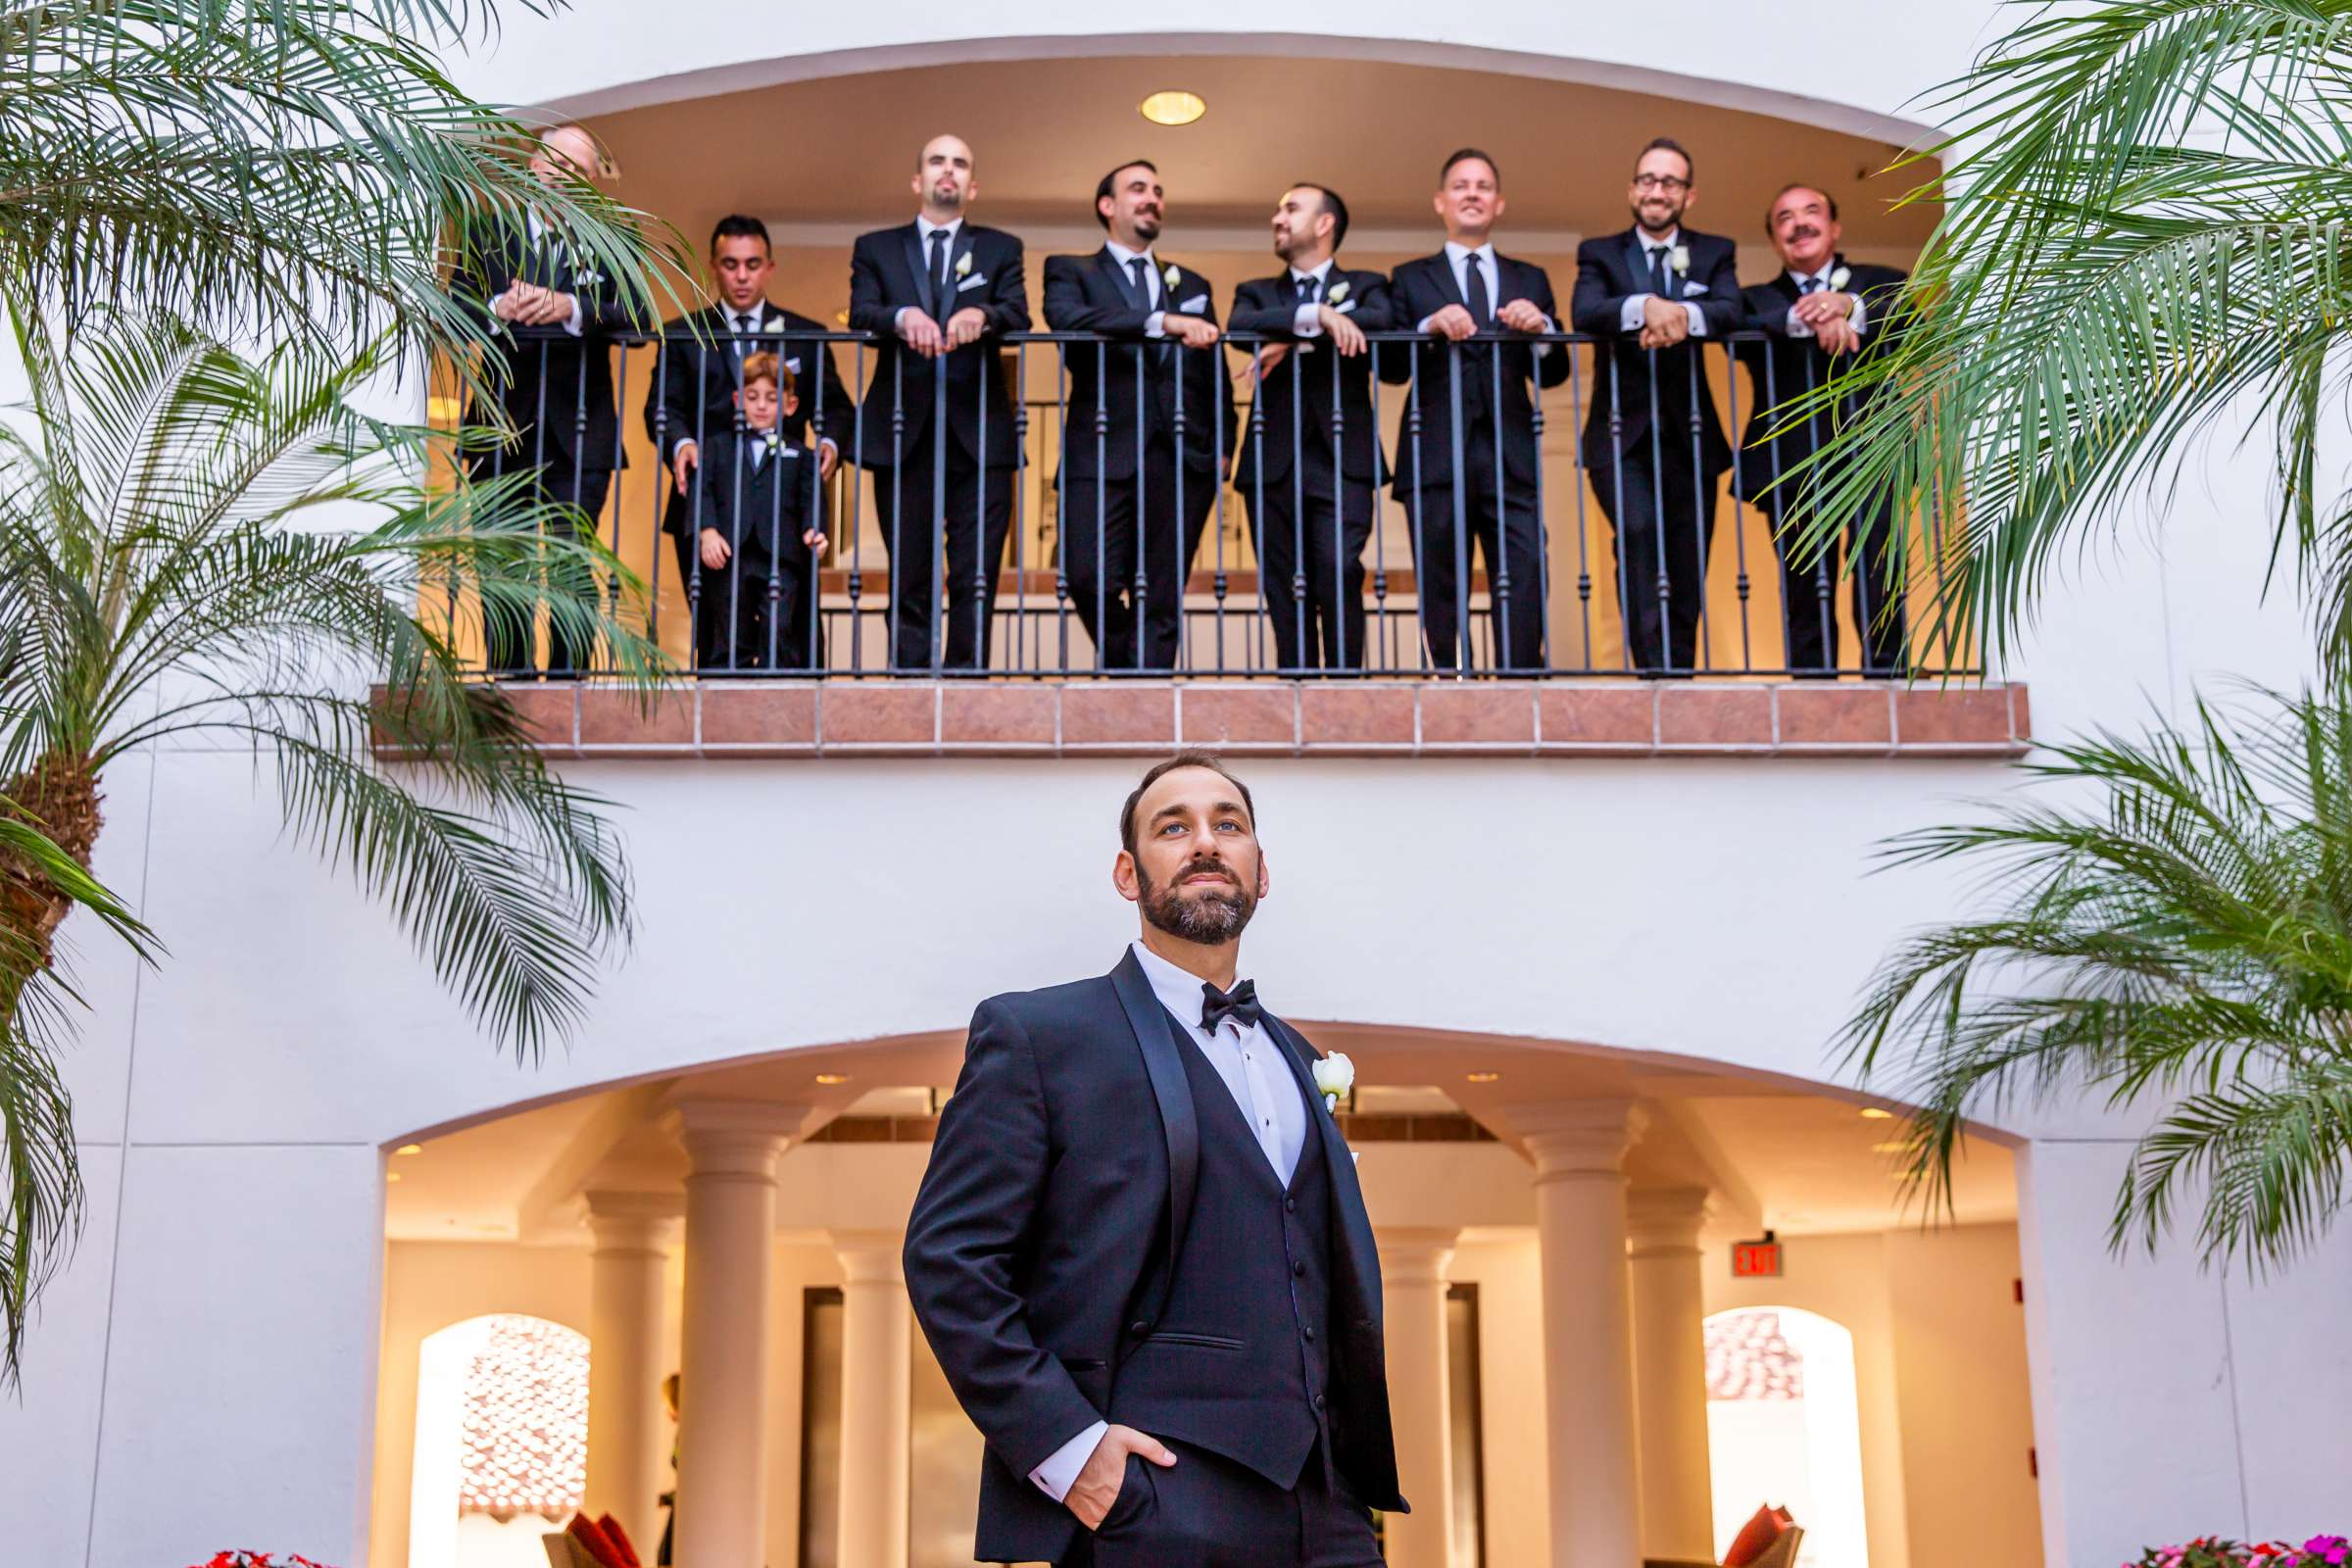 Omni La Costa Resort & Spa Wedding coordinated by SD Weddings by Gina, Jessica and Tom Wedding Photo #571800 by True Photography